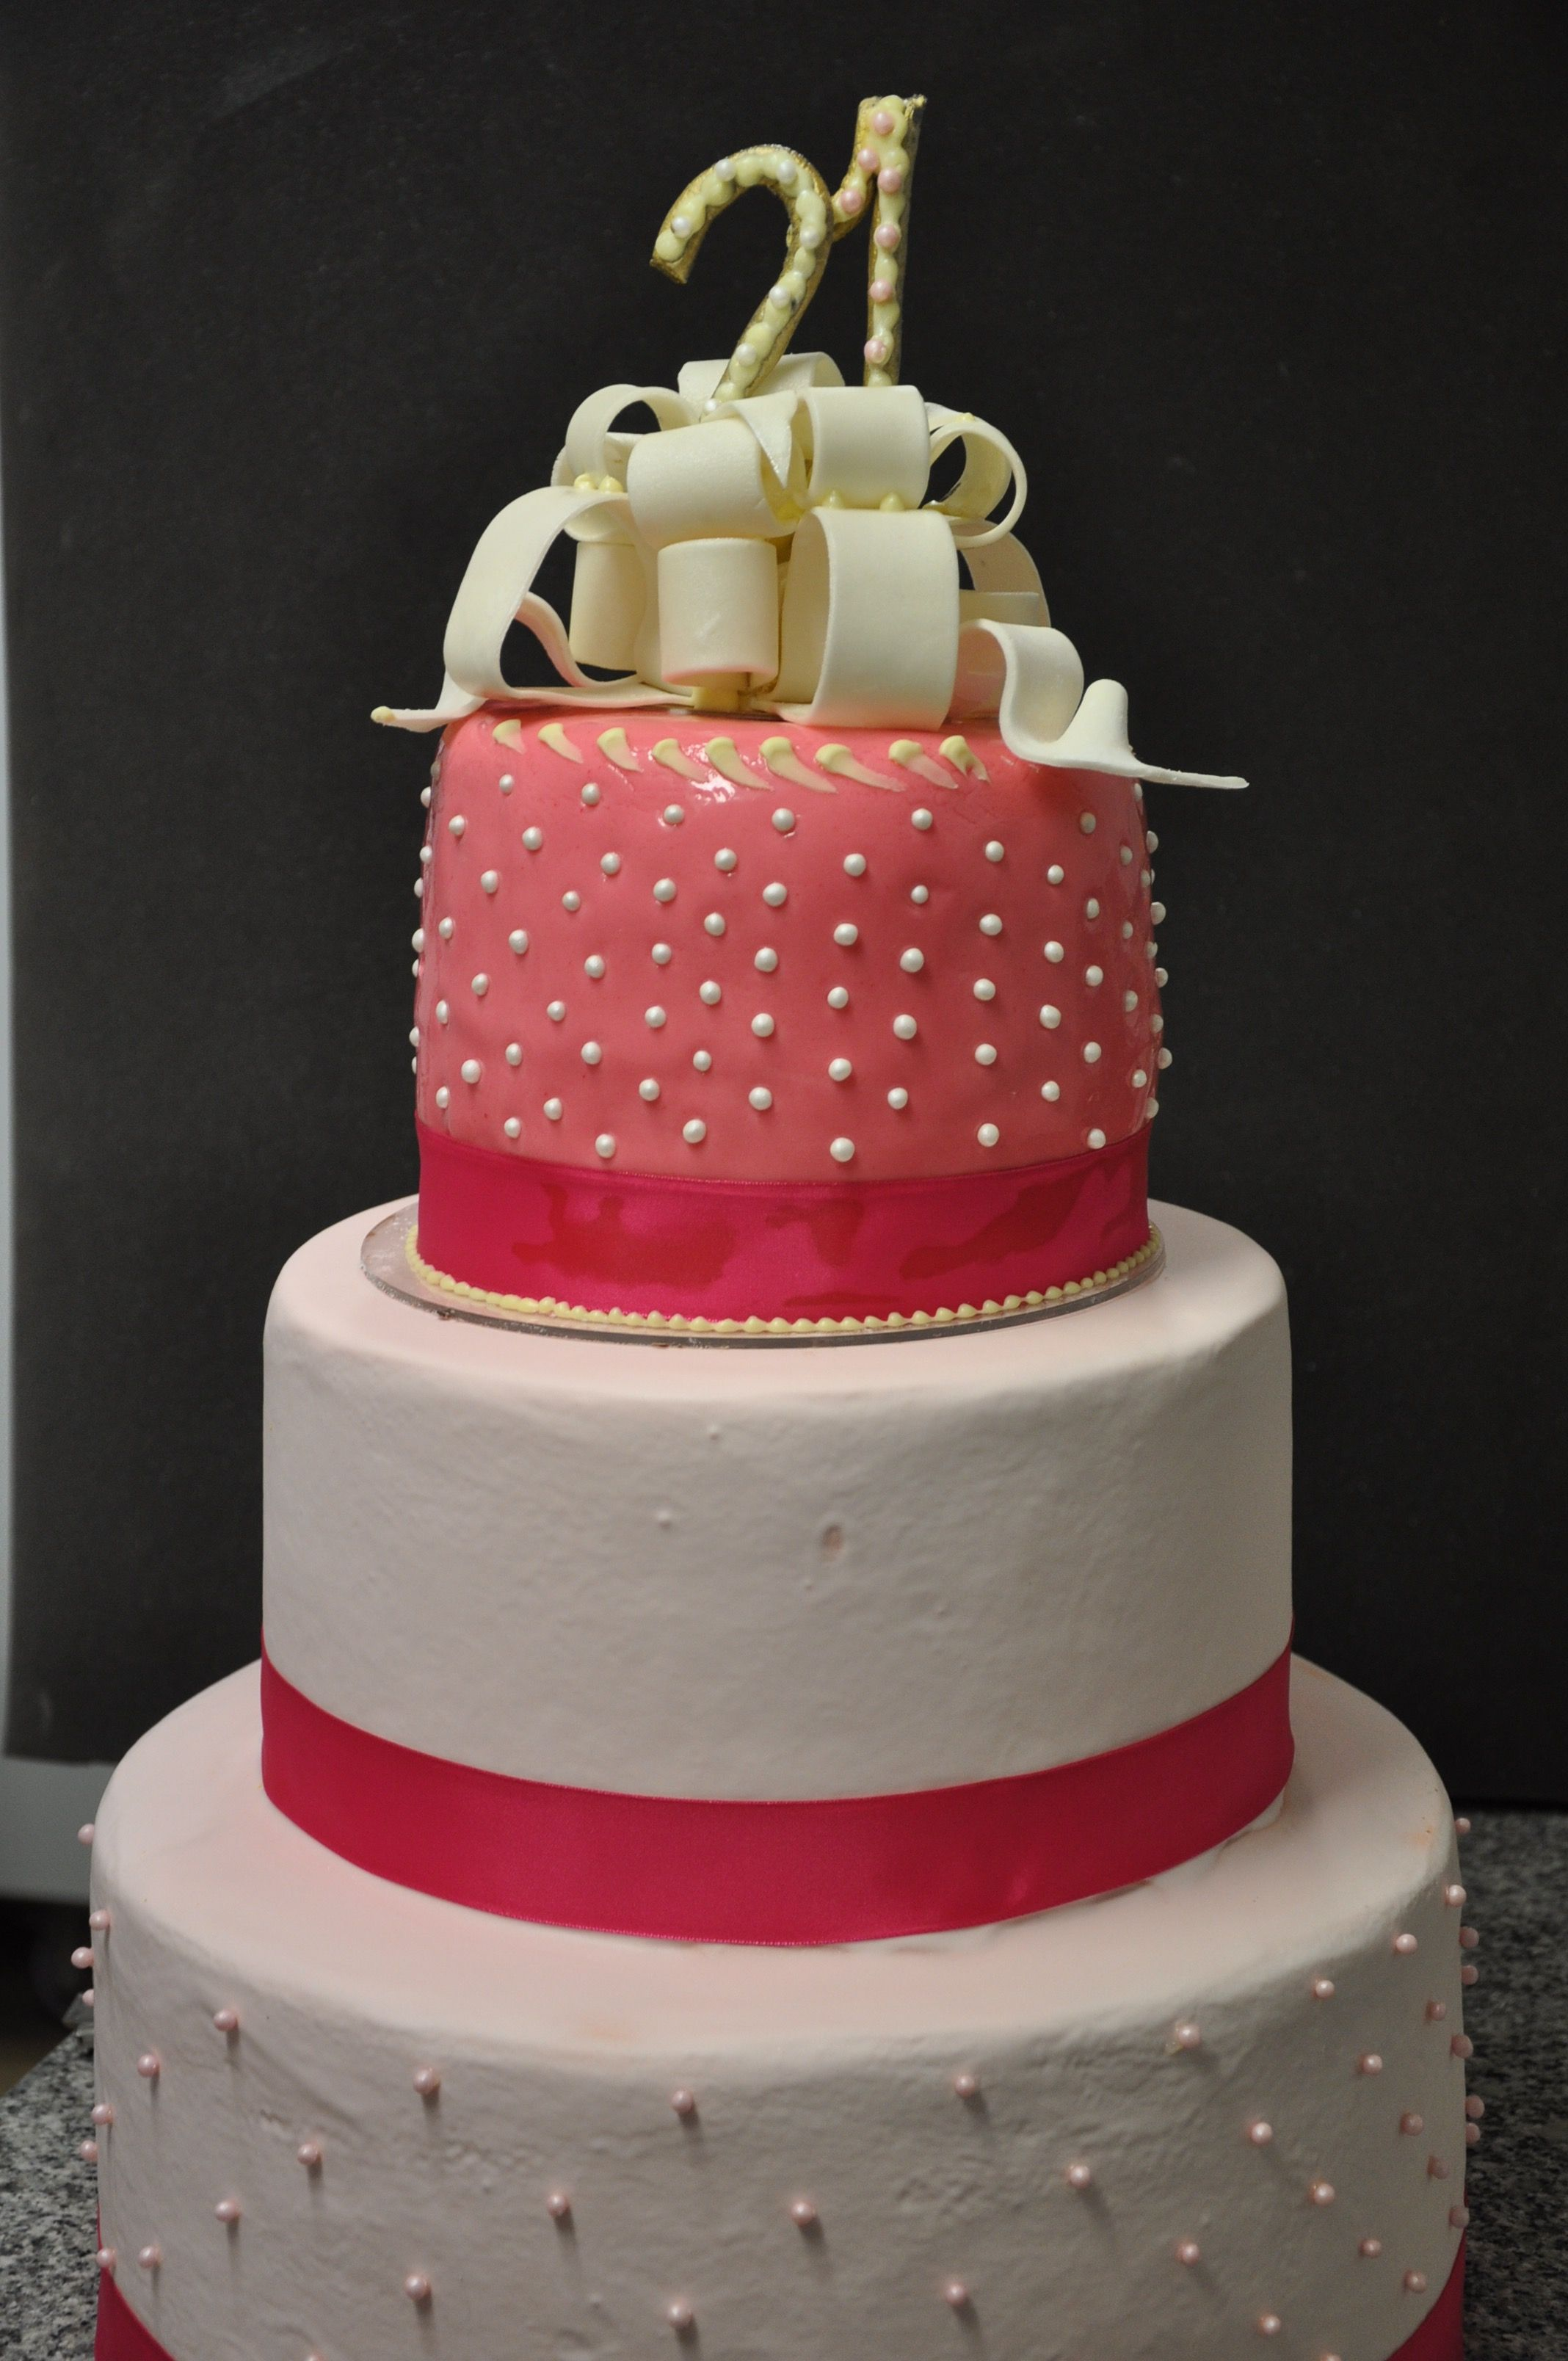 Tiered Cake 21 Years Old Girl Celeb Pitchounbakery Large Cakes